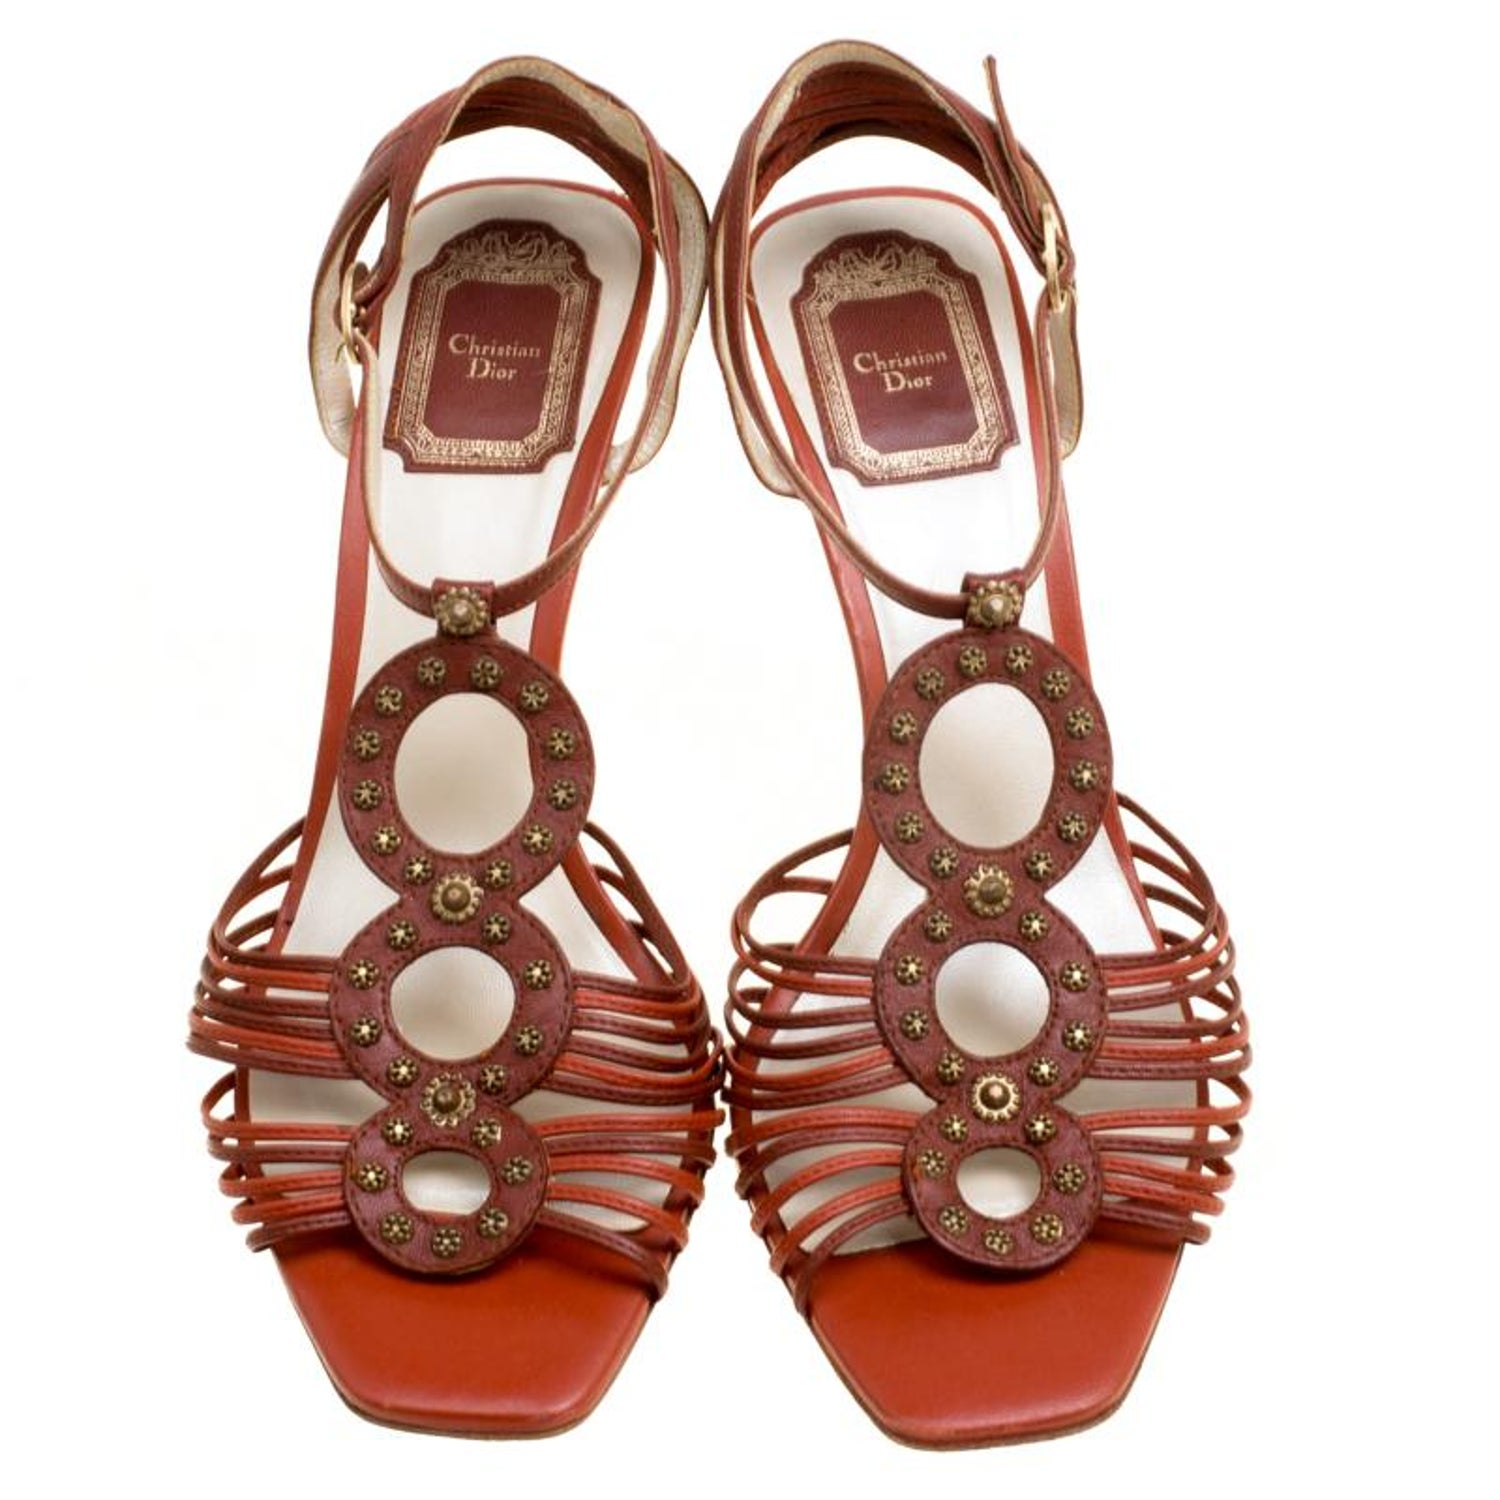 e395b411b41 Dior Brown Leather Studded Ankle Strap Sandals Size 39 For Sale at 1stdibs